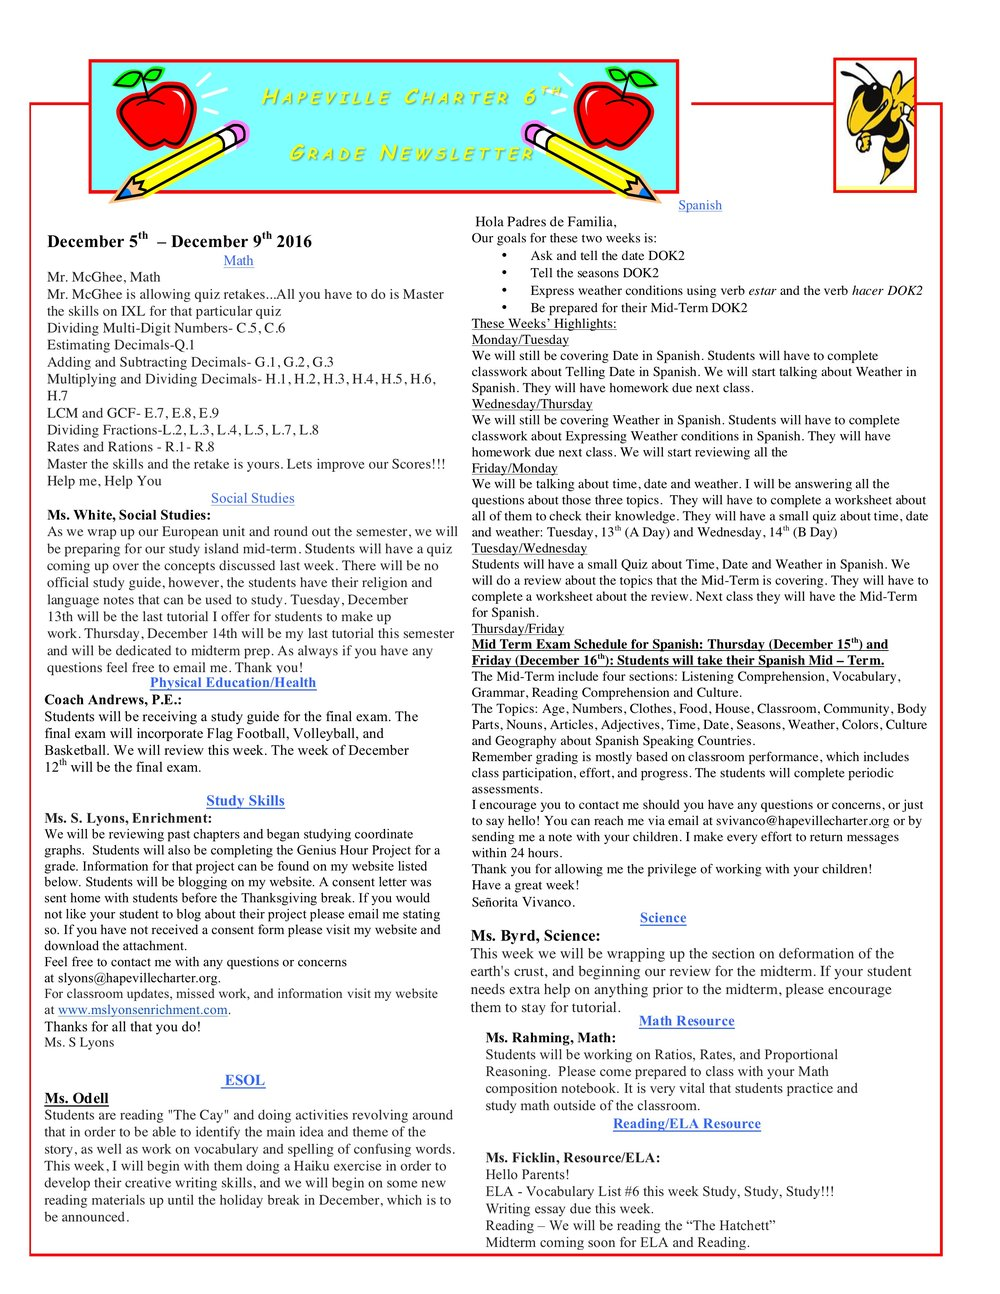 Newsletter Image6th Grade Newsletter 12.5.2016.jpeg